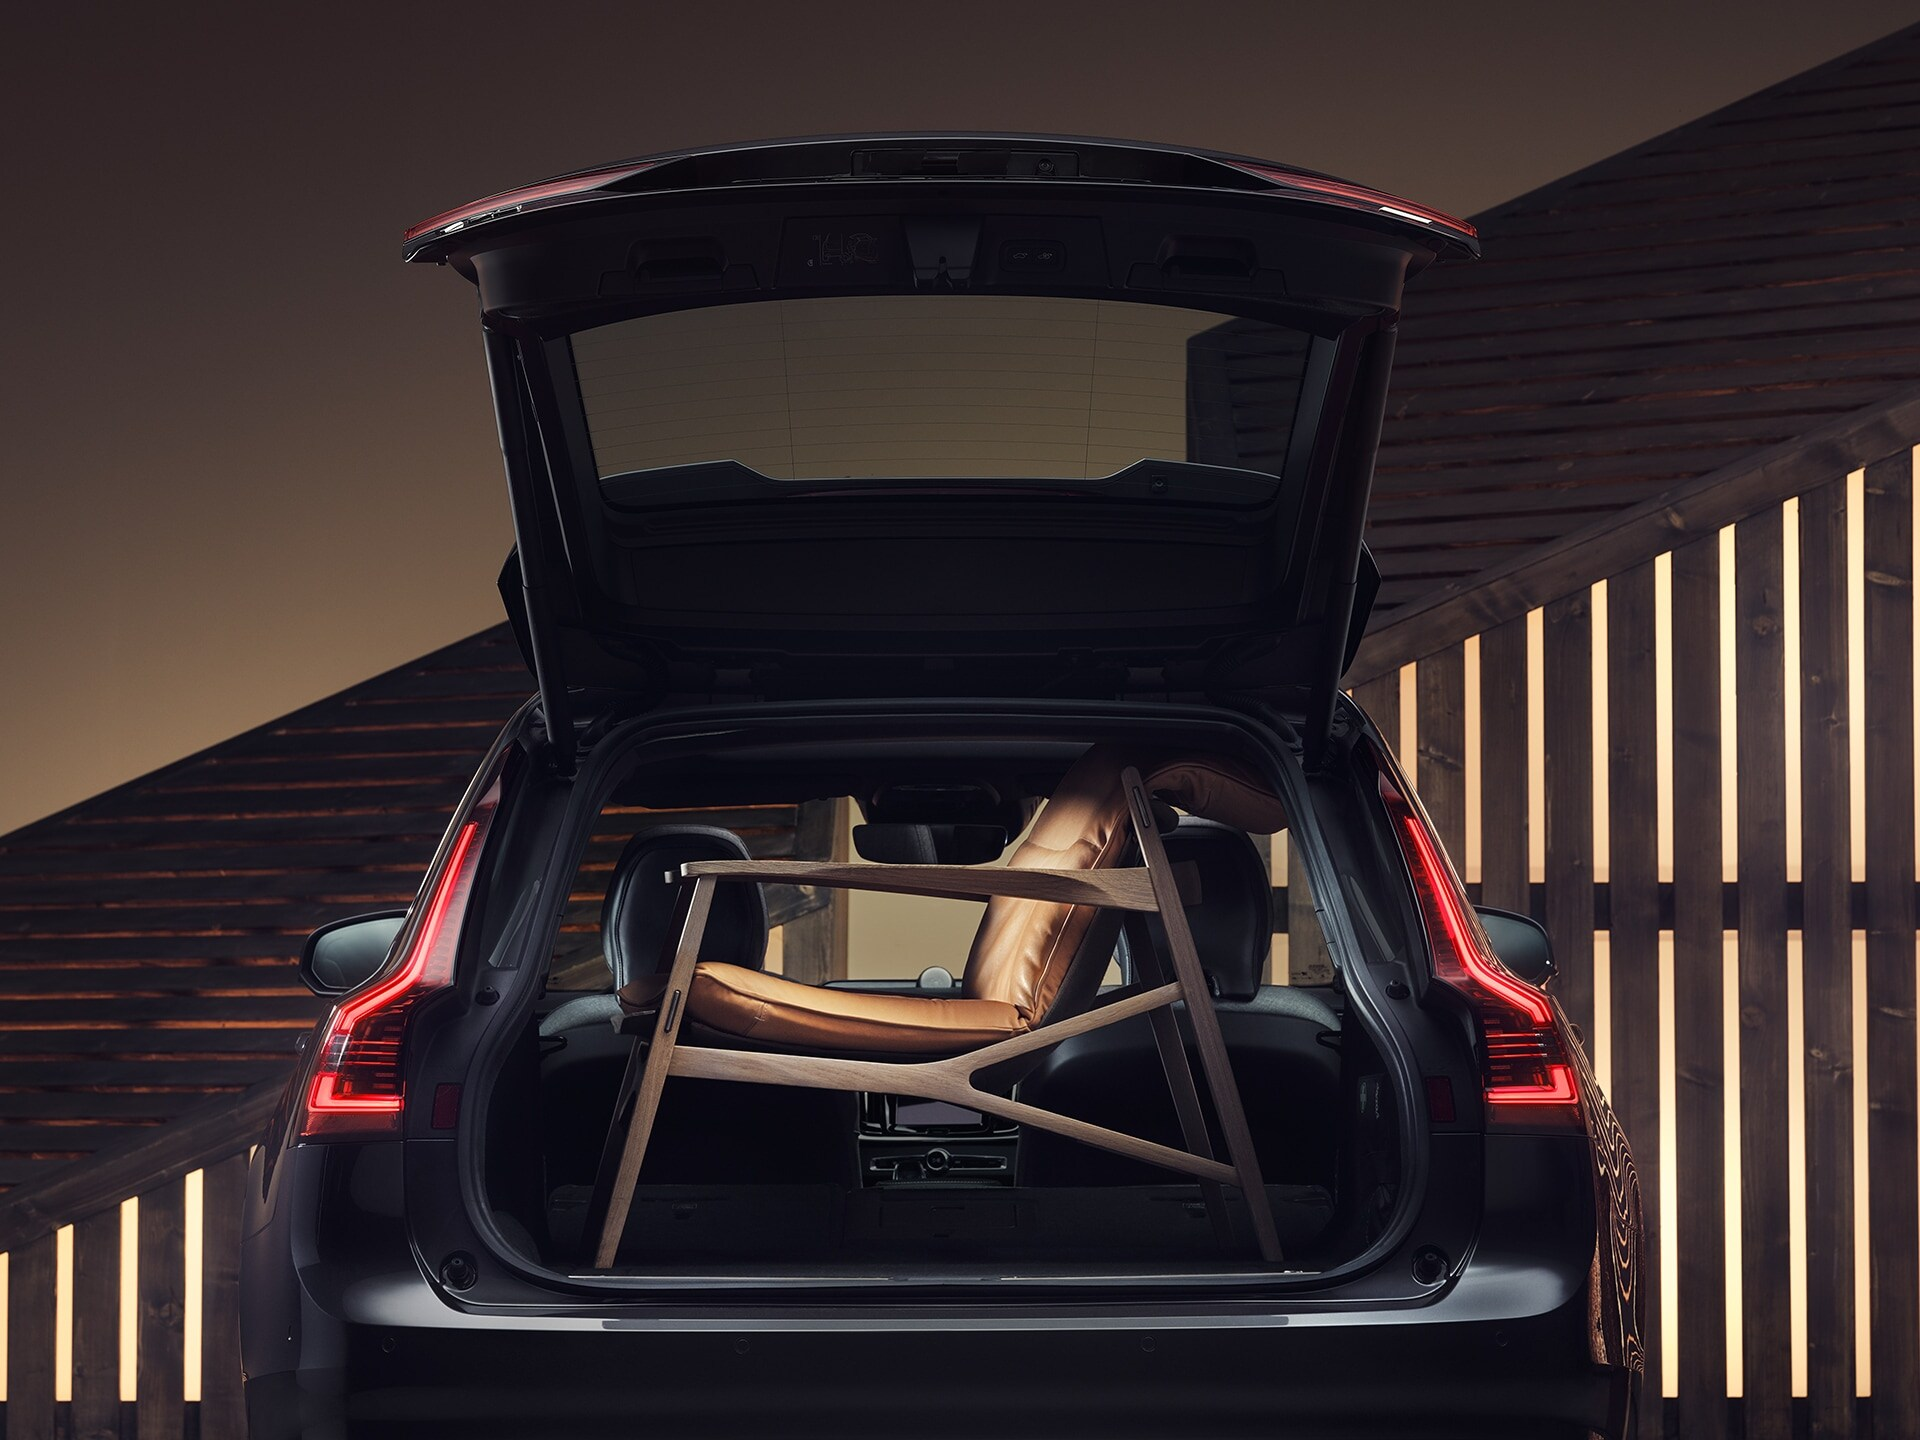 The boot space of a Volvo V90, filled up by an elegant, brown armchair.